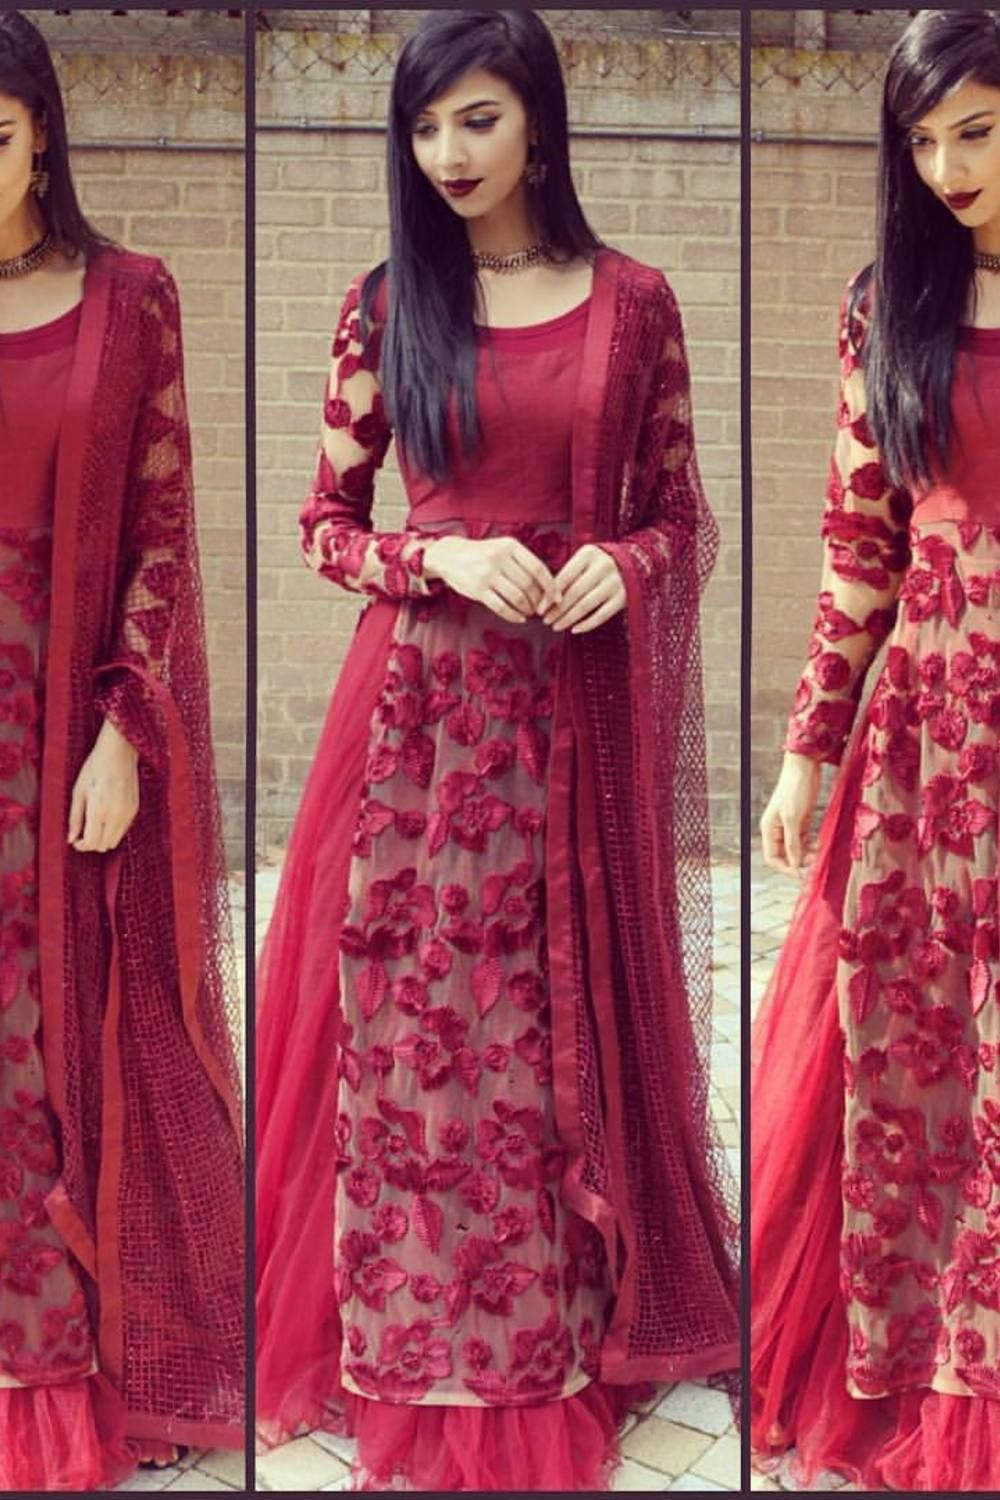 Pink dress and jacket for wedding  ZARAH Like our page facebookzarahclothing